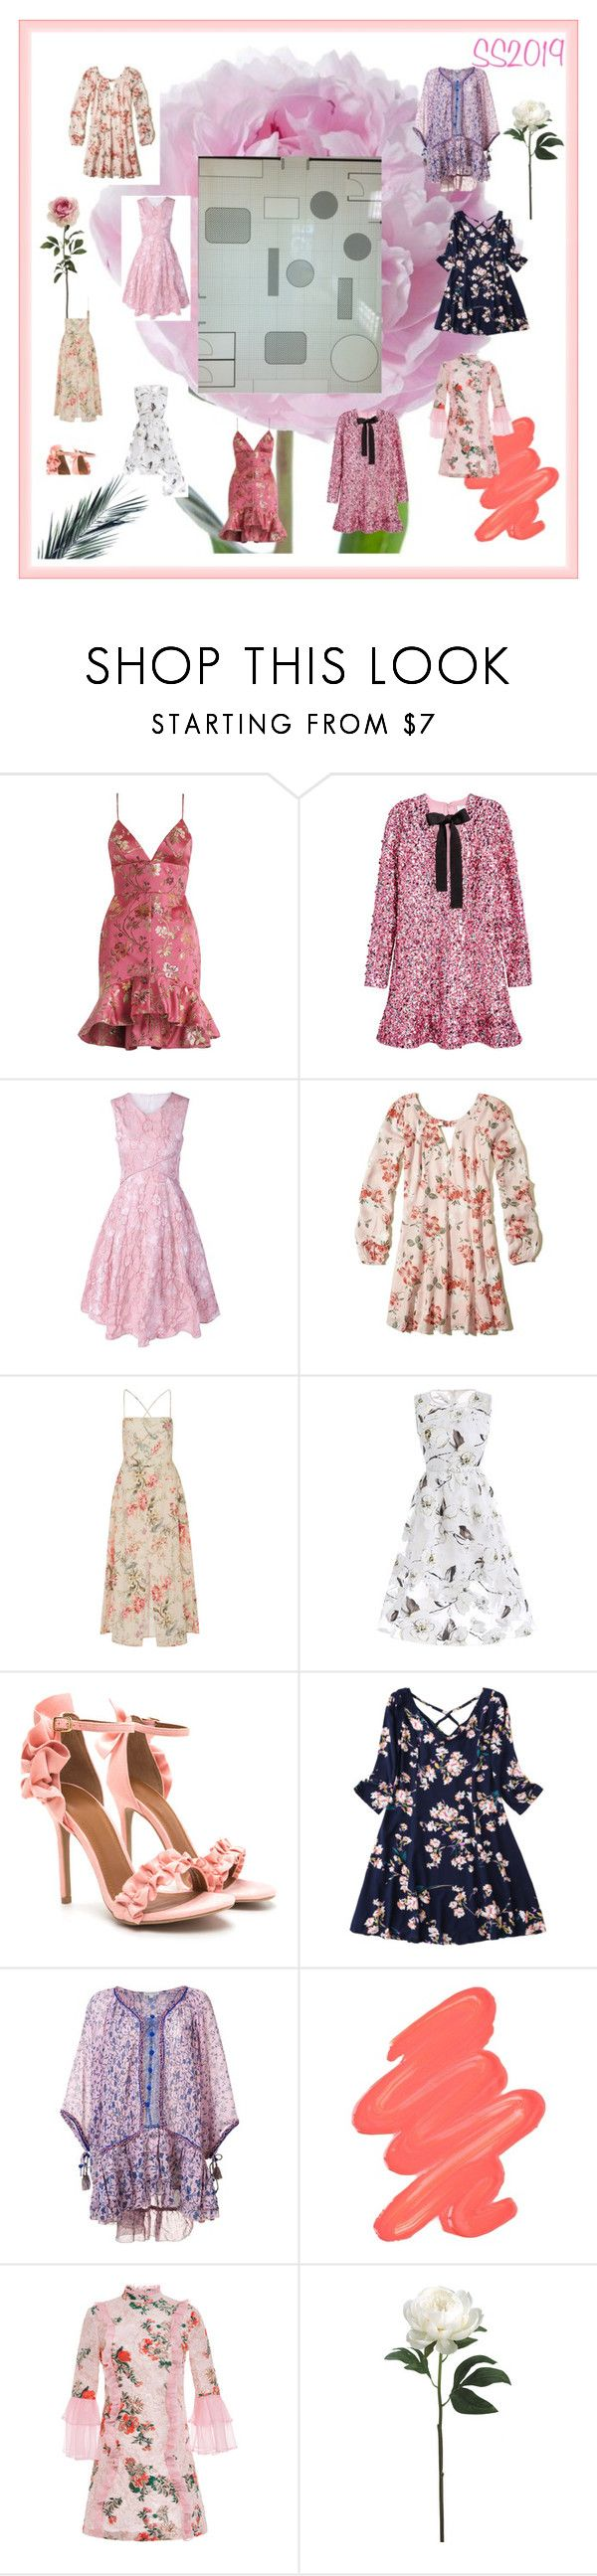 """Peony"" by abbyjane-1 on Polyvore featuring Zimmermann, H&M, Hollister Co., Poupette St Barth, Obsessive Compulsive Cosmetics and VIVETTA"